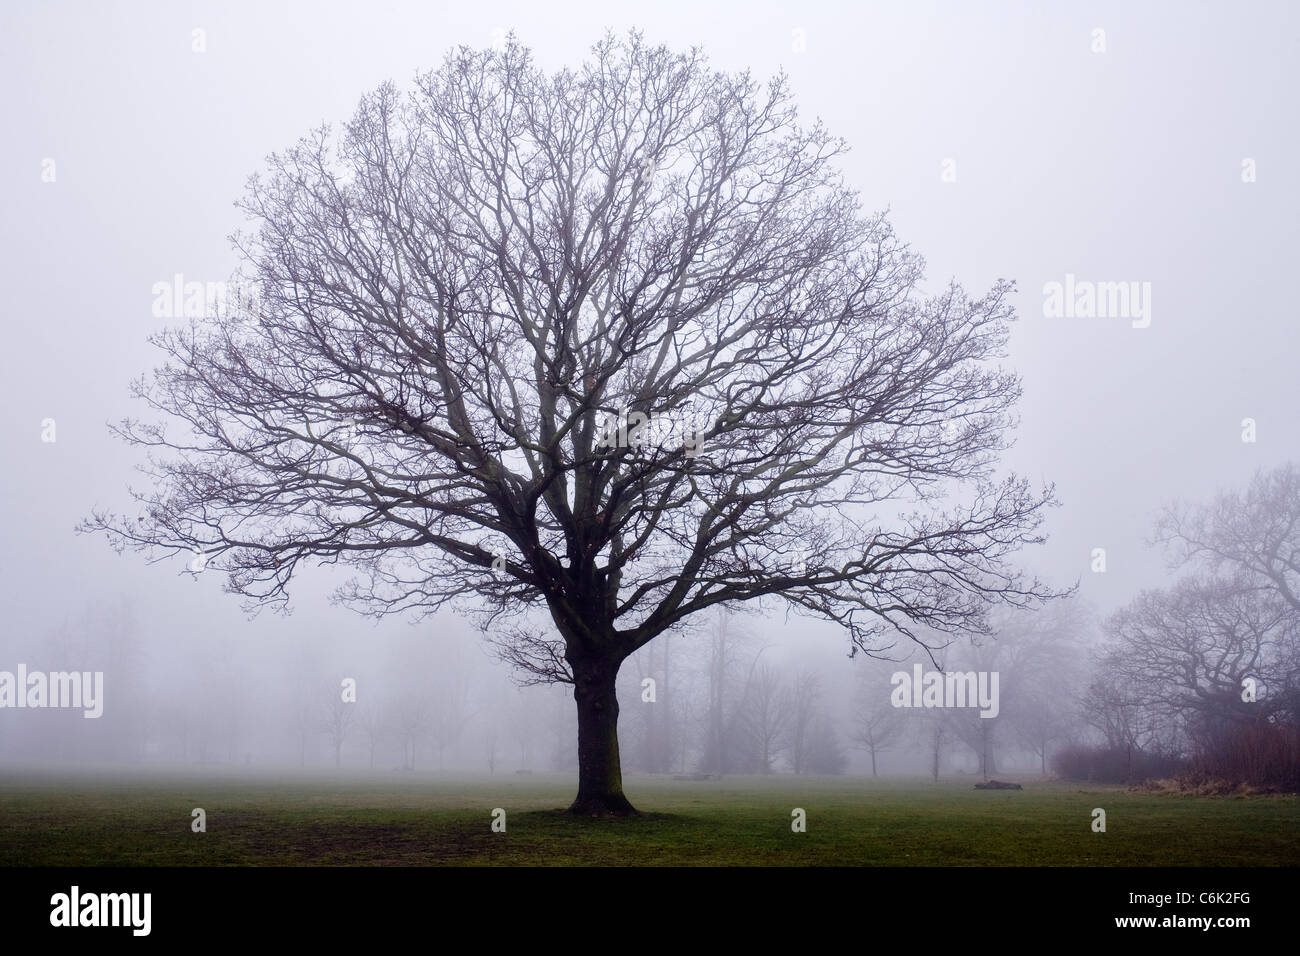 Mist on Tooting Common in South London. - Stock Image